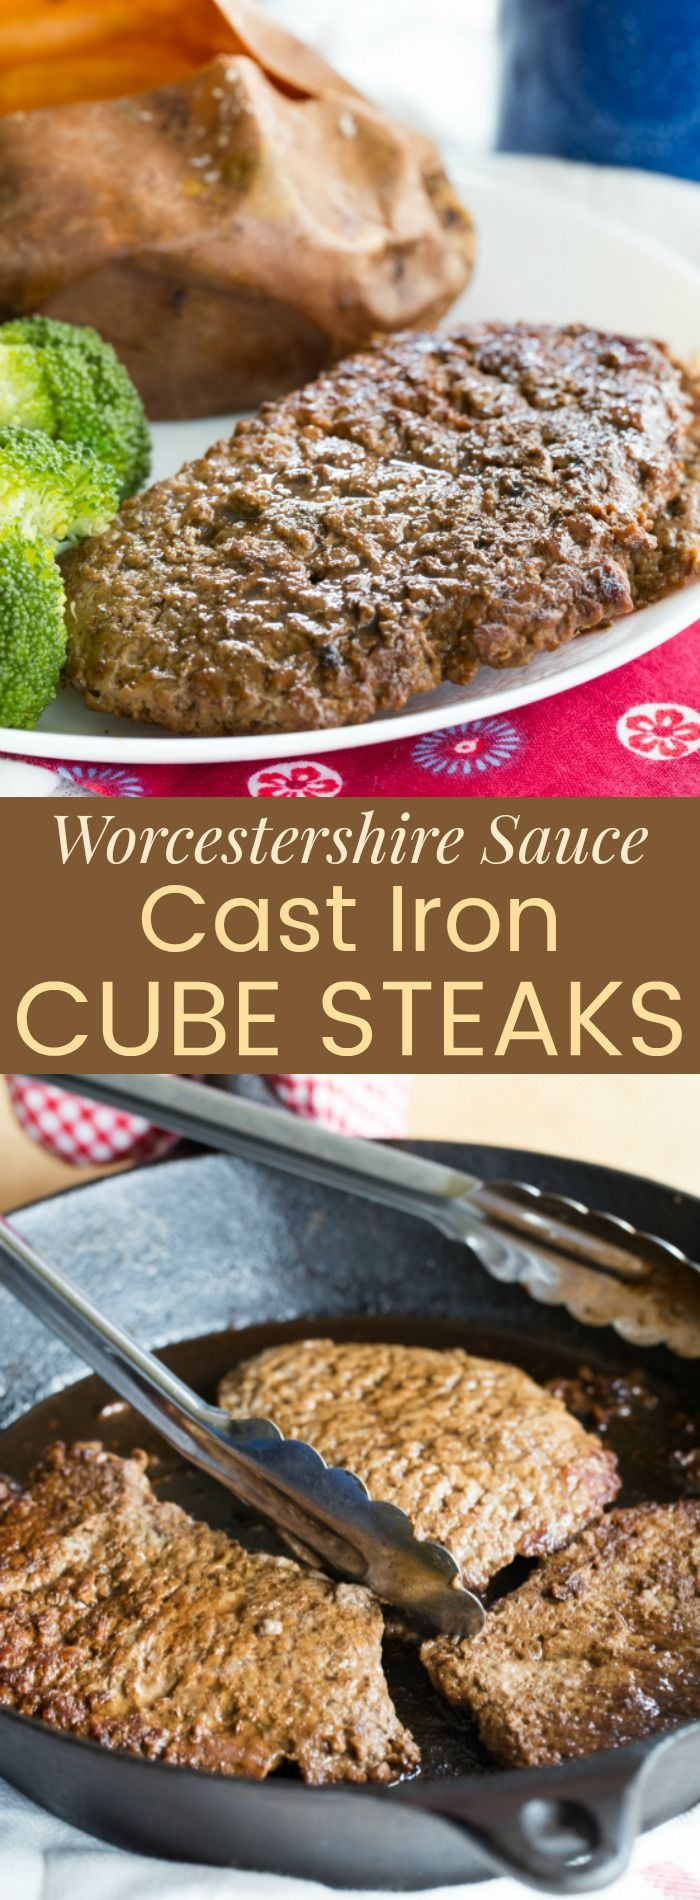 Worcestershire Sauce Cast Iron Cube Steaks - an easy beef recipe perfect for a quick weeknight dinner. There's only two main ingredients and it takes less than ten minutes. And for the #bestbeef, pick up cube steaks from my partner @certangusbeef.